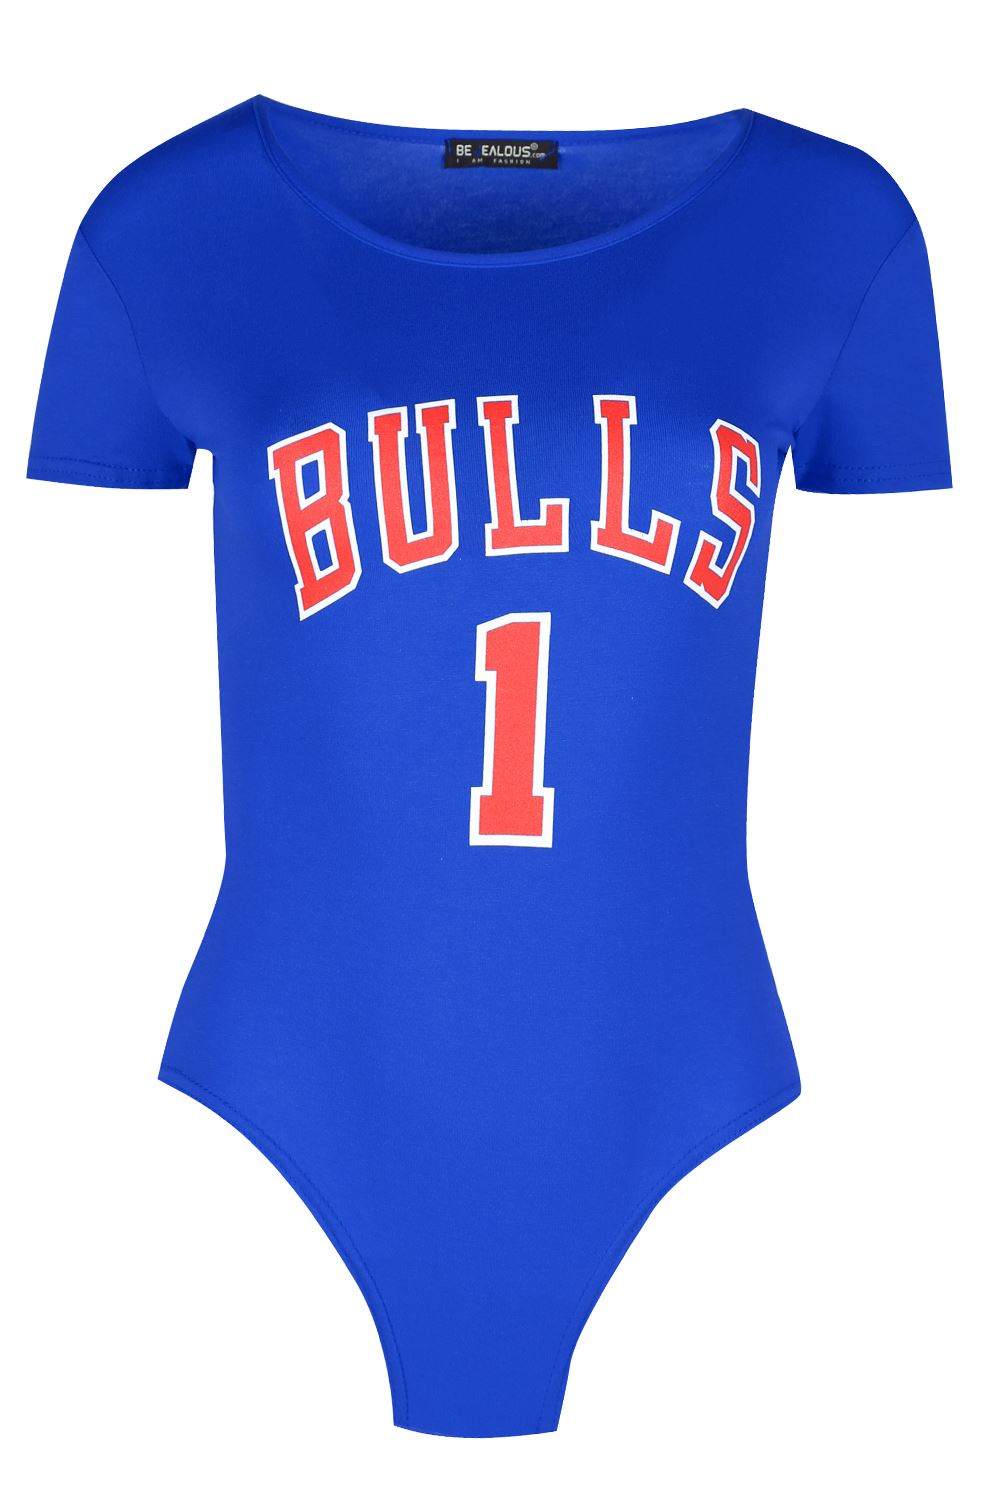 Womens American BULL 1 Sports Bodysuit Jersey Ladies Plain Round Neck Leotard Clothes, Shoes & Accessories